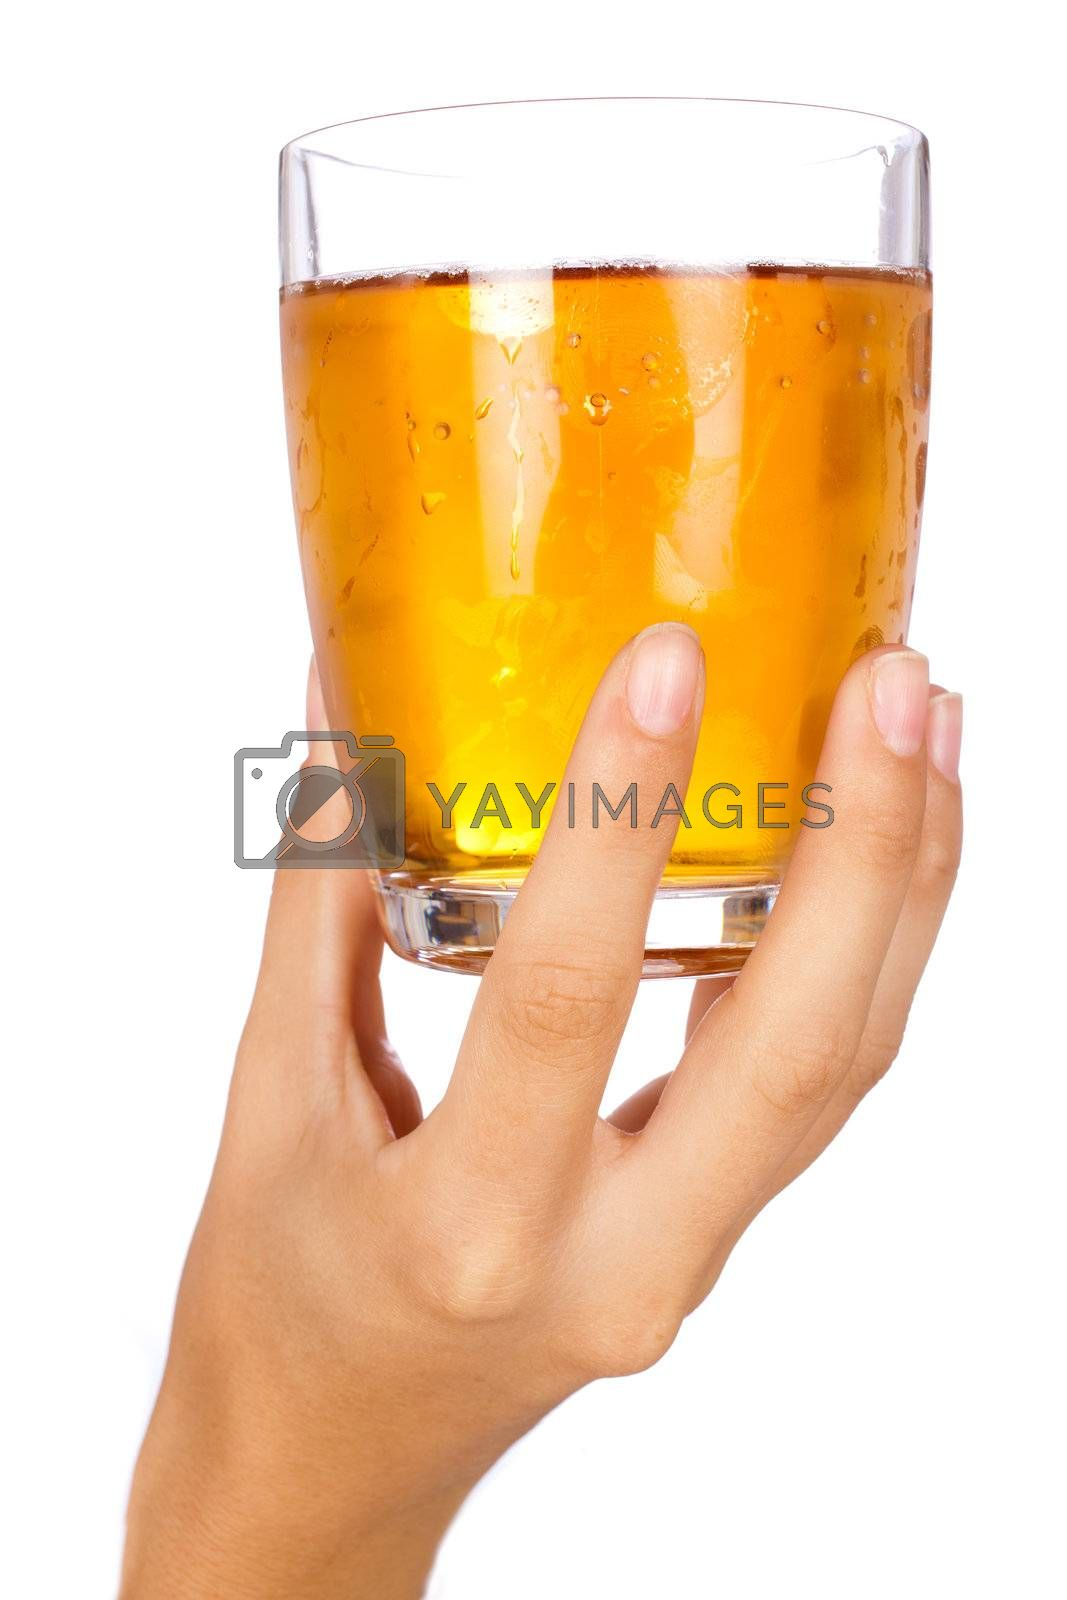 Holding a glass of champagne by get4net